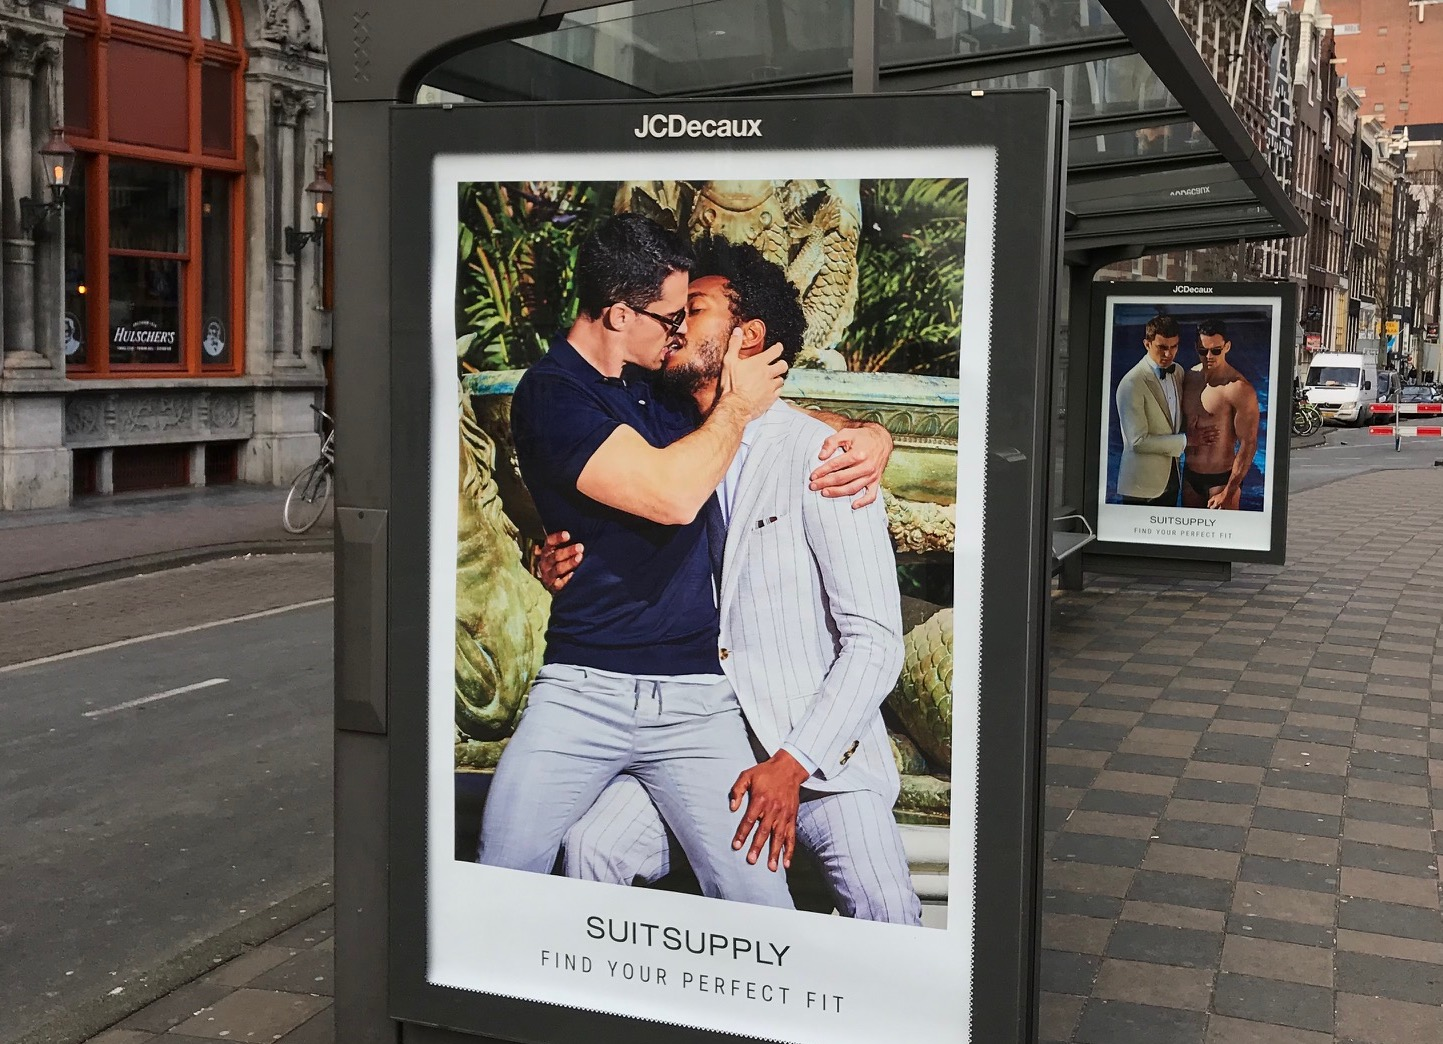 Suit Supply campagne, marketing, Wrangler, We, Mango